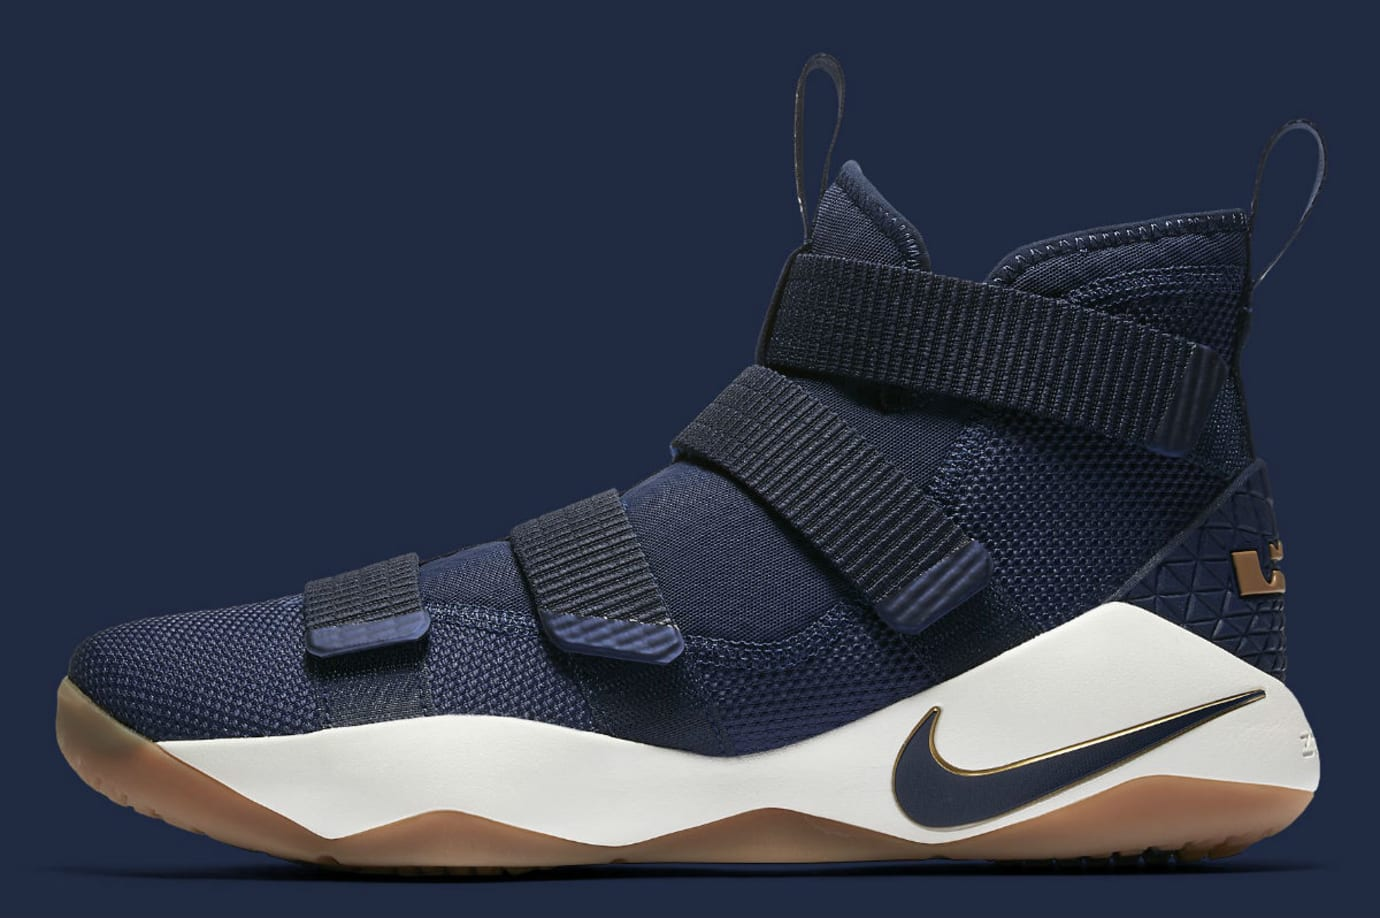 6ee804c7dfa8 Nike LeBron Soldier 11 Cavs Navy Release Date Profile 897644-402